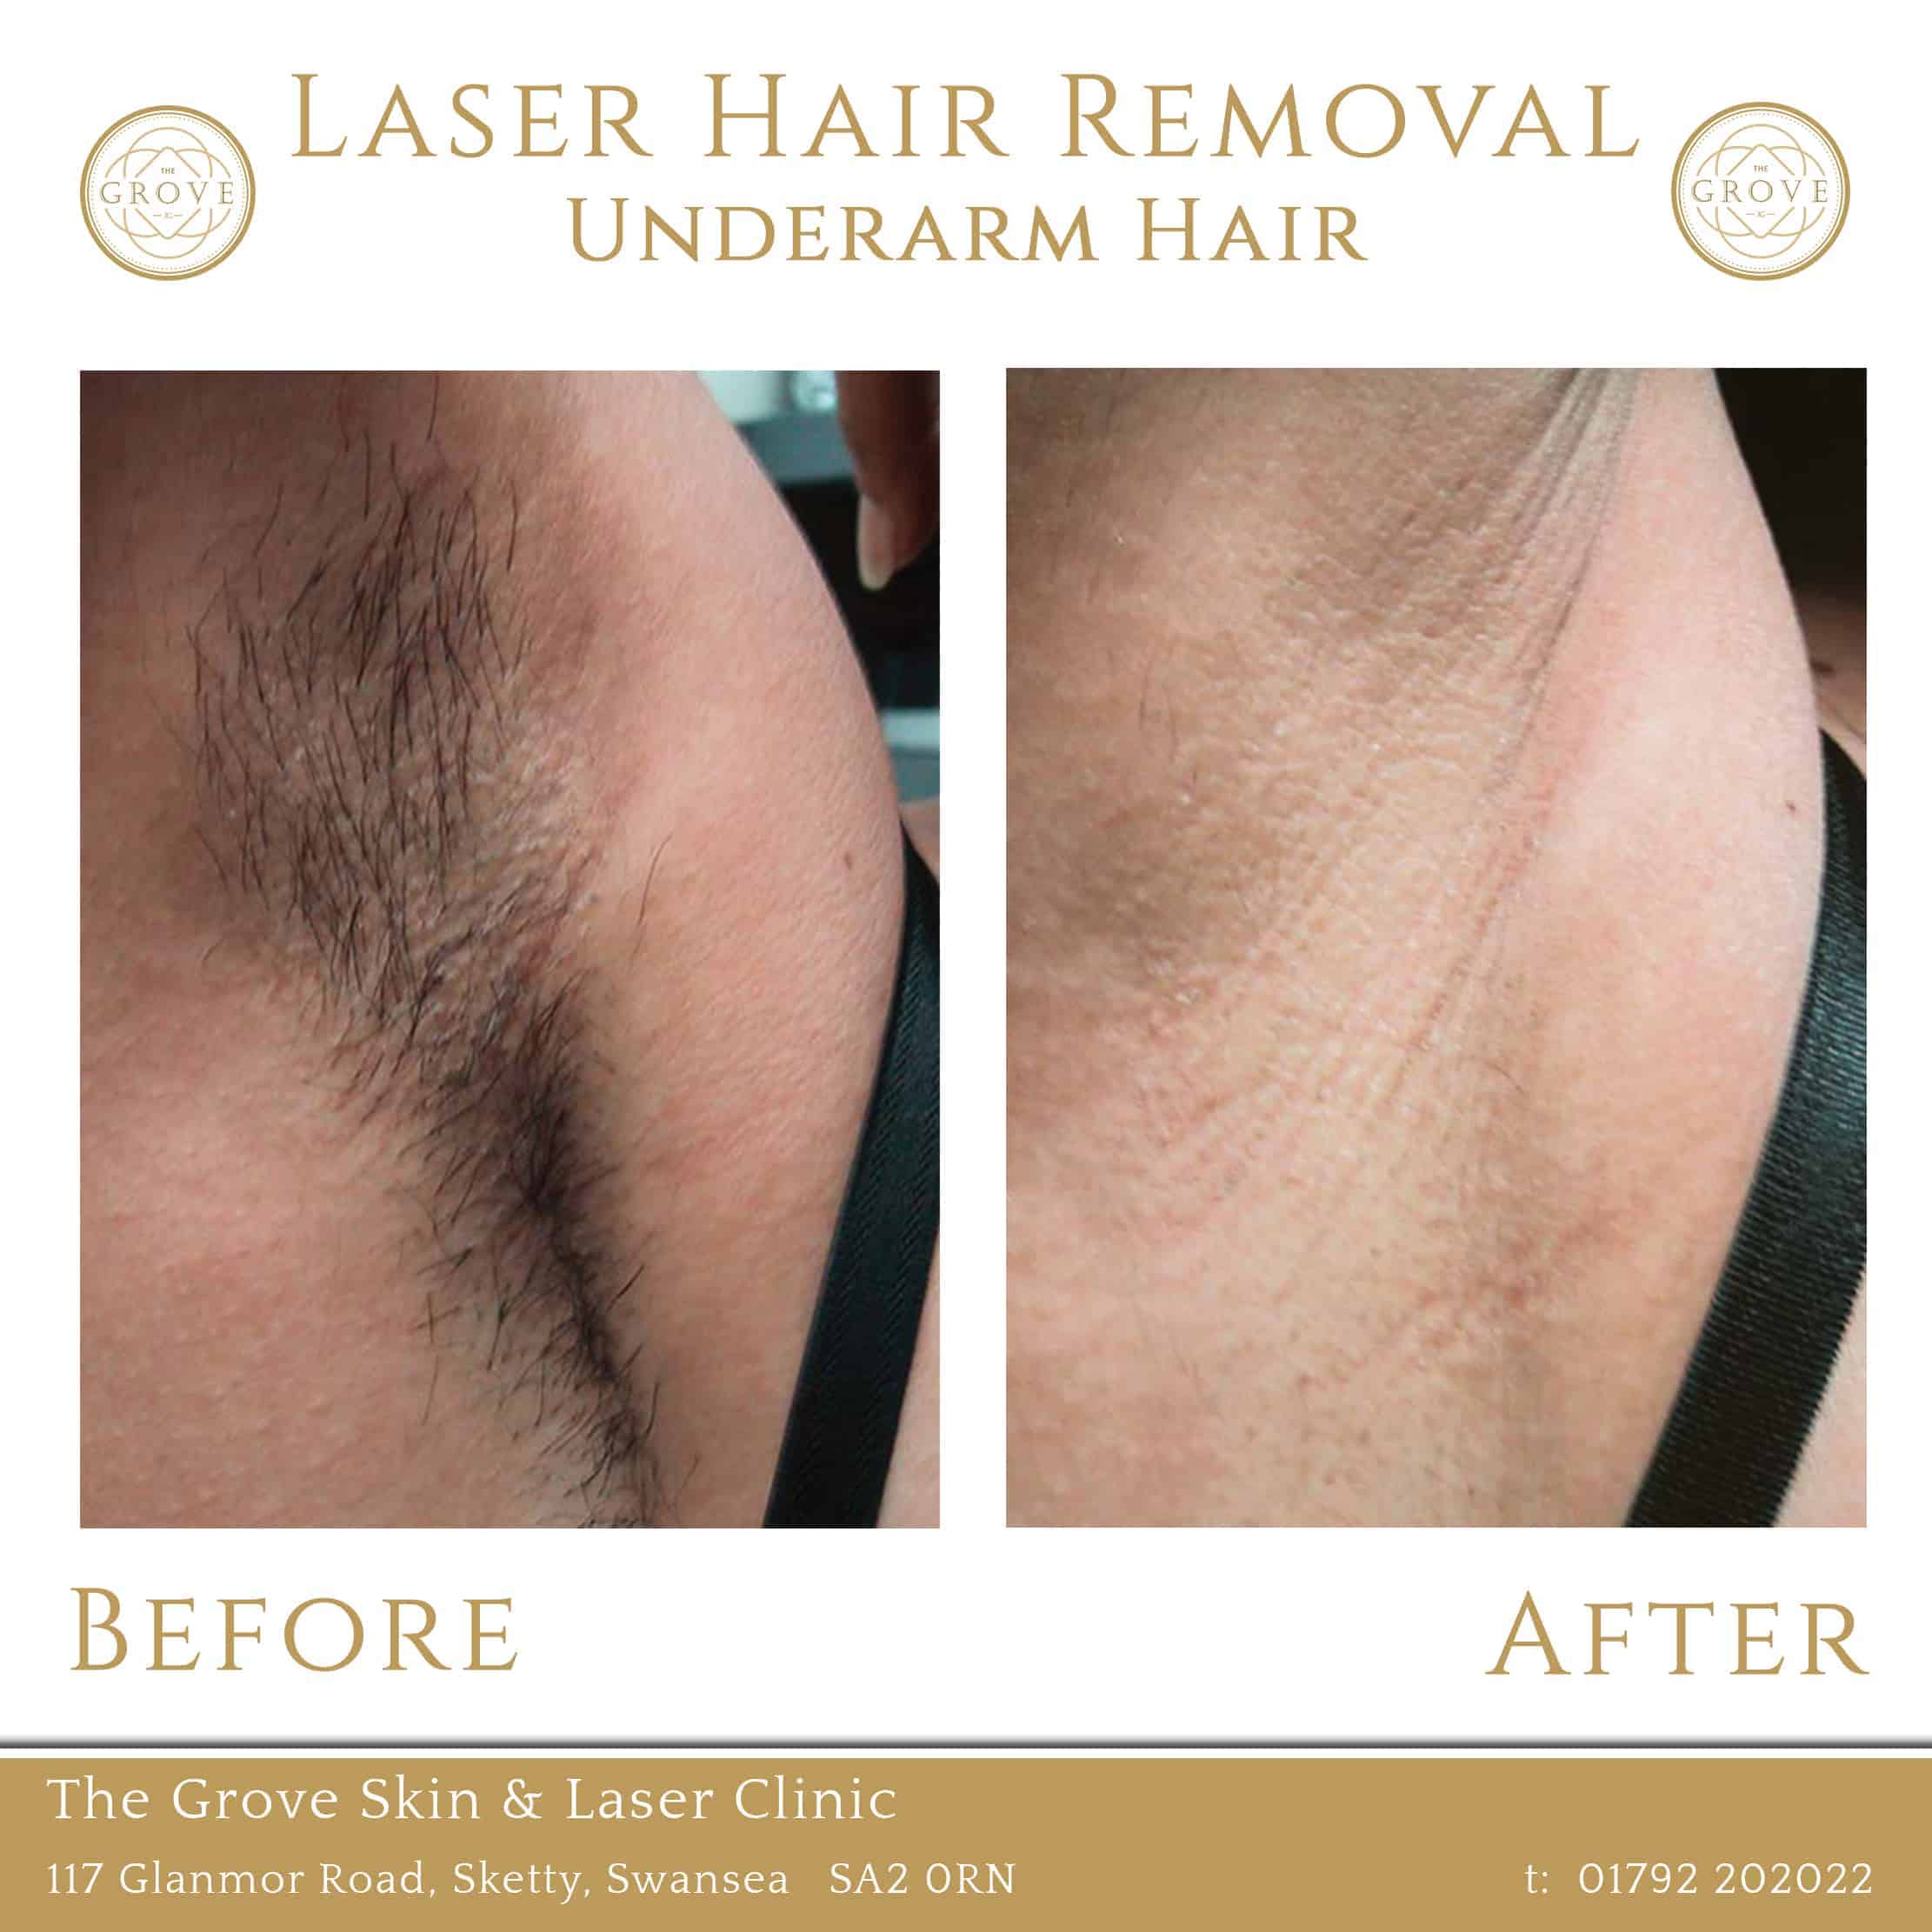 Laser Underarm Hair Removal Before and After